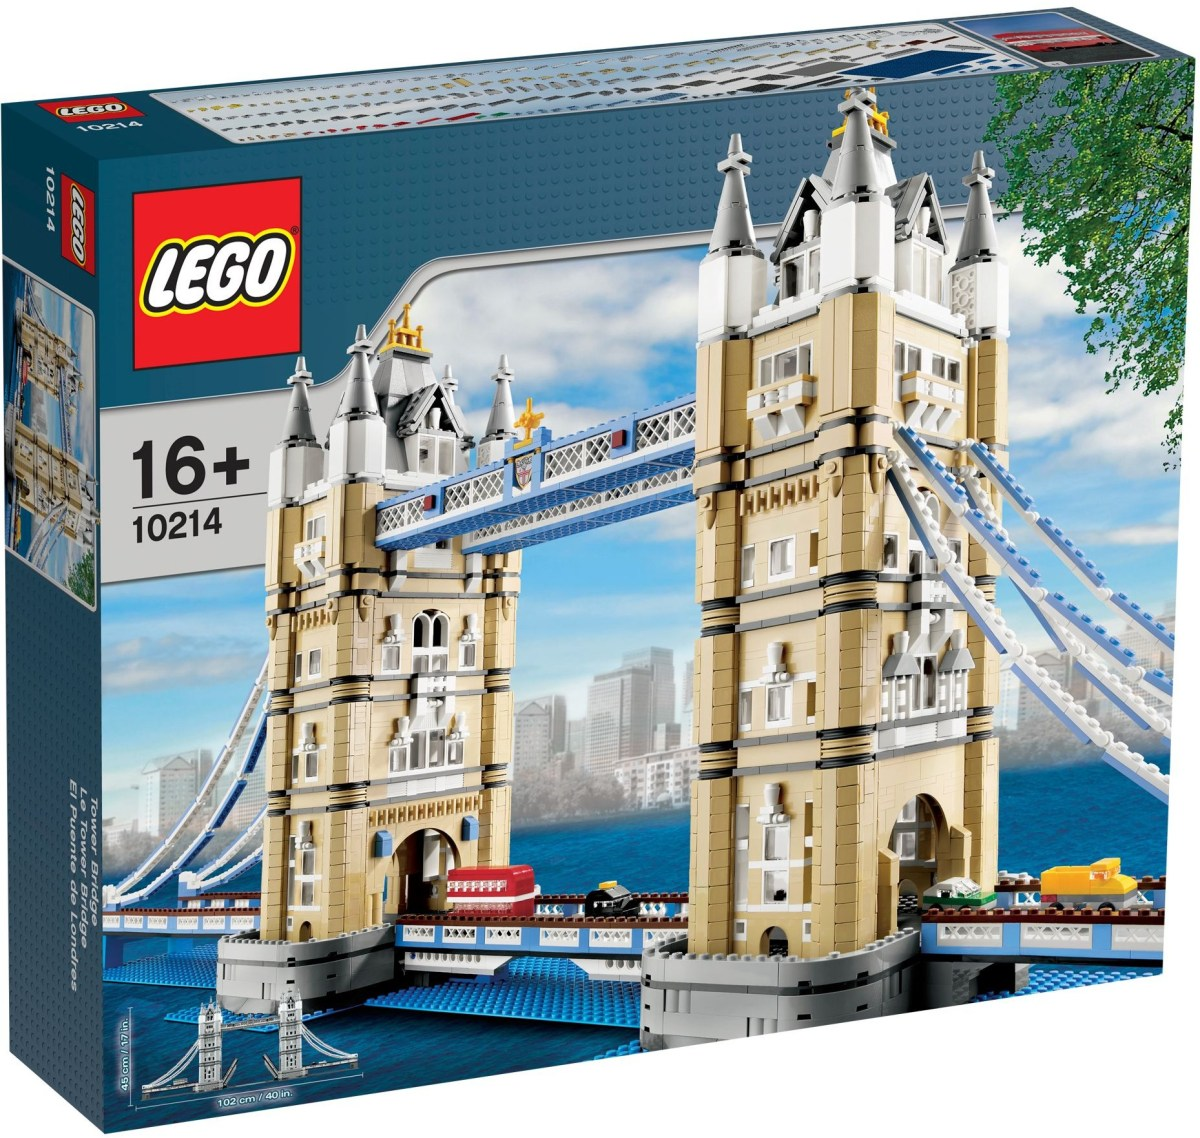 LEGO Creator Tower Bridge (10214) Now On Sale at Walmart